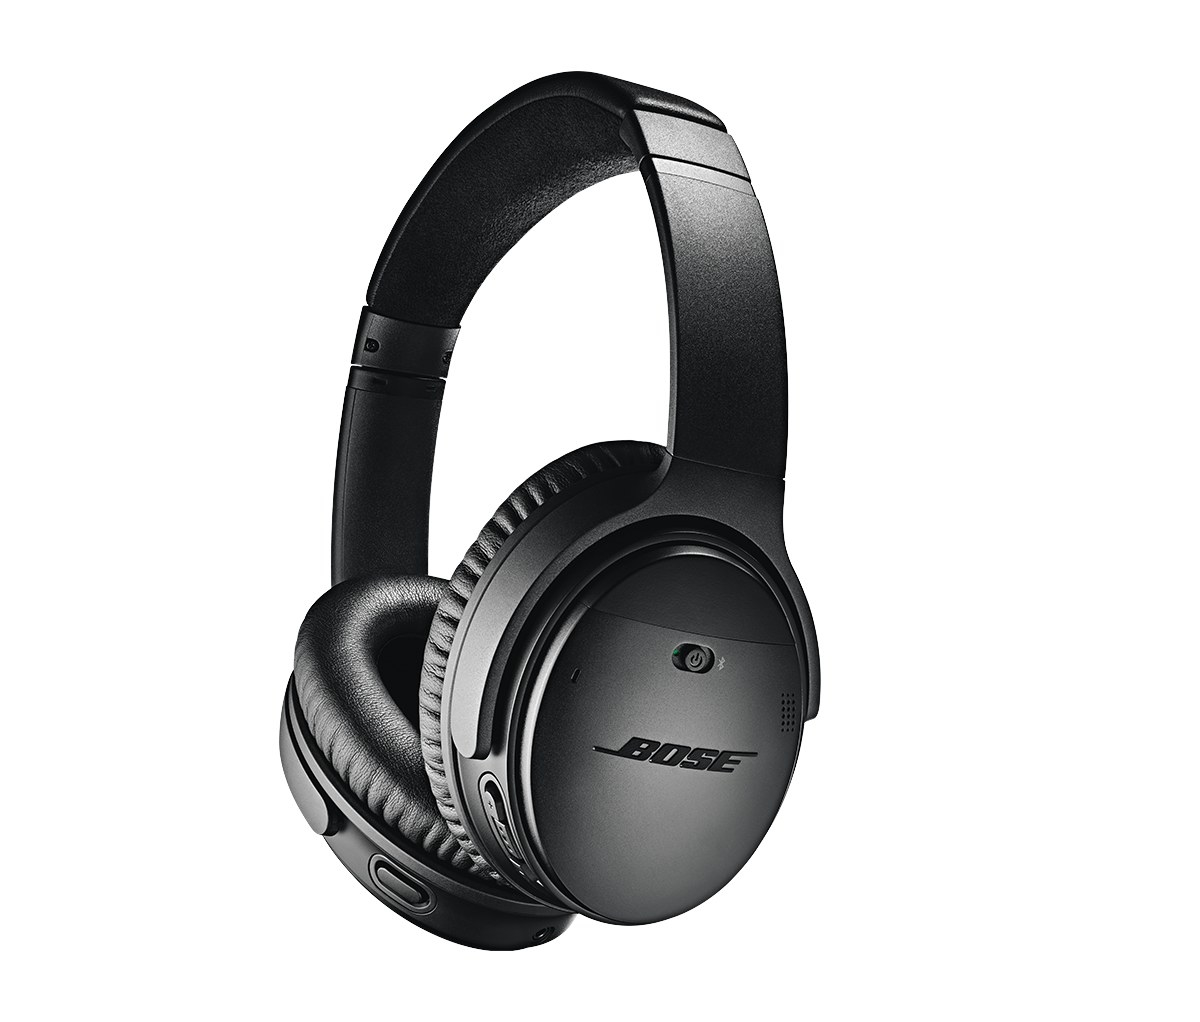 The black over-ear headphones